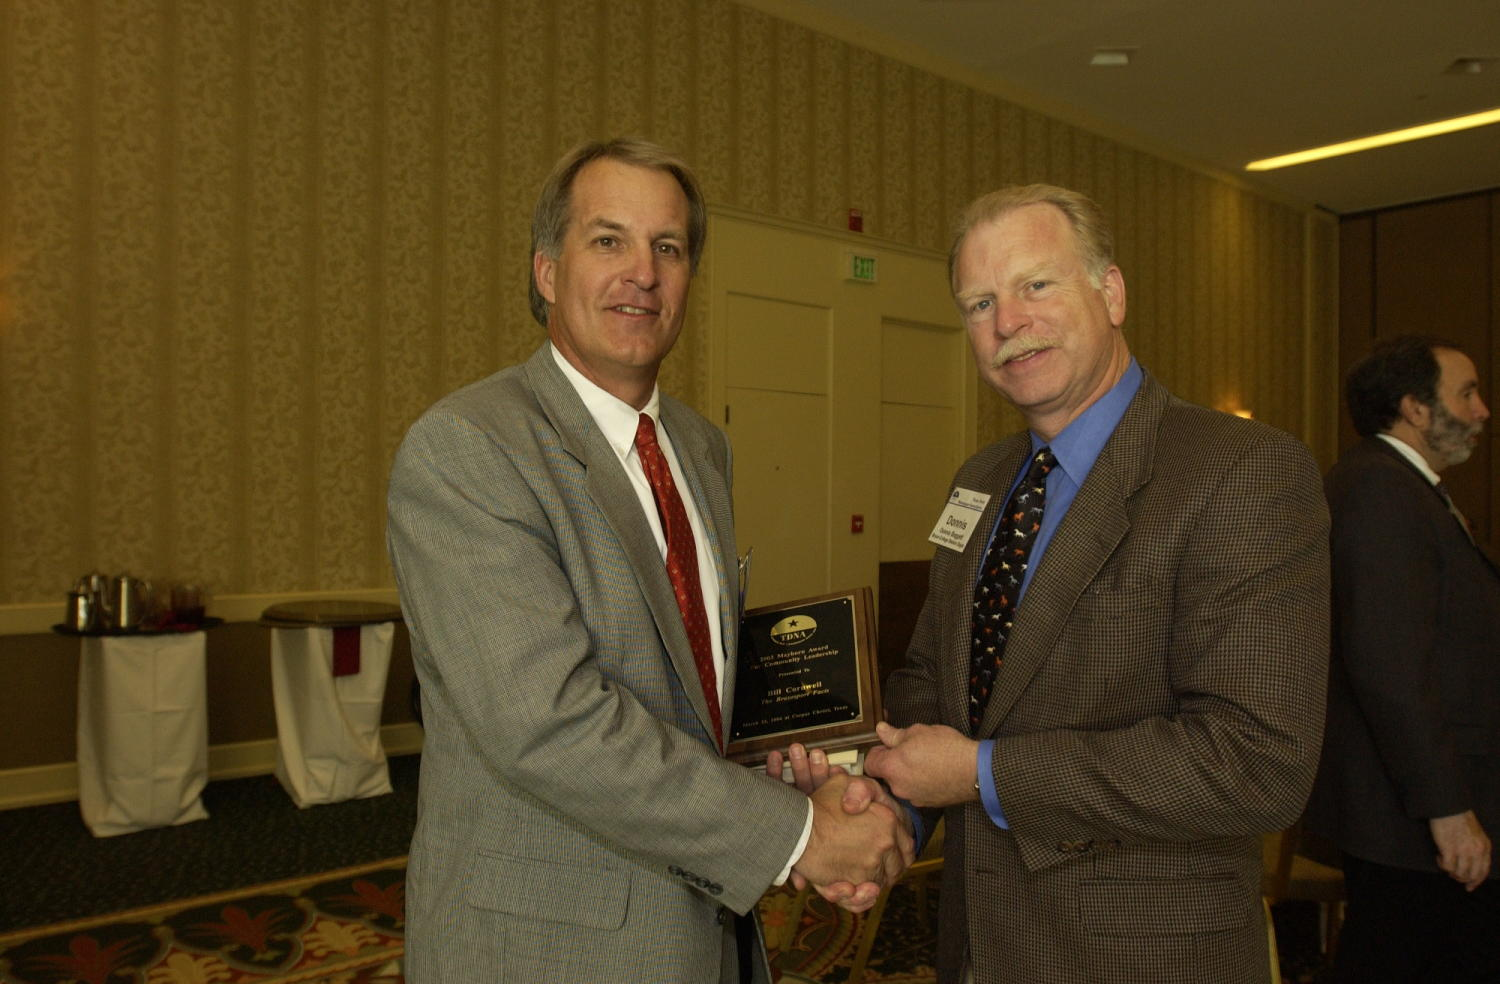 """[Donnie Baggett handing out plaque award to Bill Cornwell], Photograph of Donnis Bagget (right) handing an engraved plaque to Bill Cornwell, who is receiving the award from the 2004 Texas Daily News Association annual conference held in Corpus Christi. The plaque reads, """"2003 Mayborn Award for Community Leadership presented to Bill Cornwell, The Brazosport Facts. March 22, 2004 at Corpus Christi, Texas."""","""